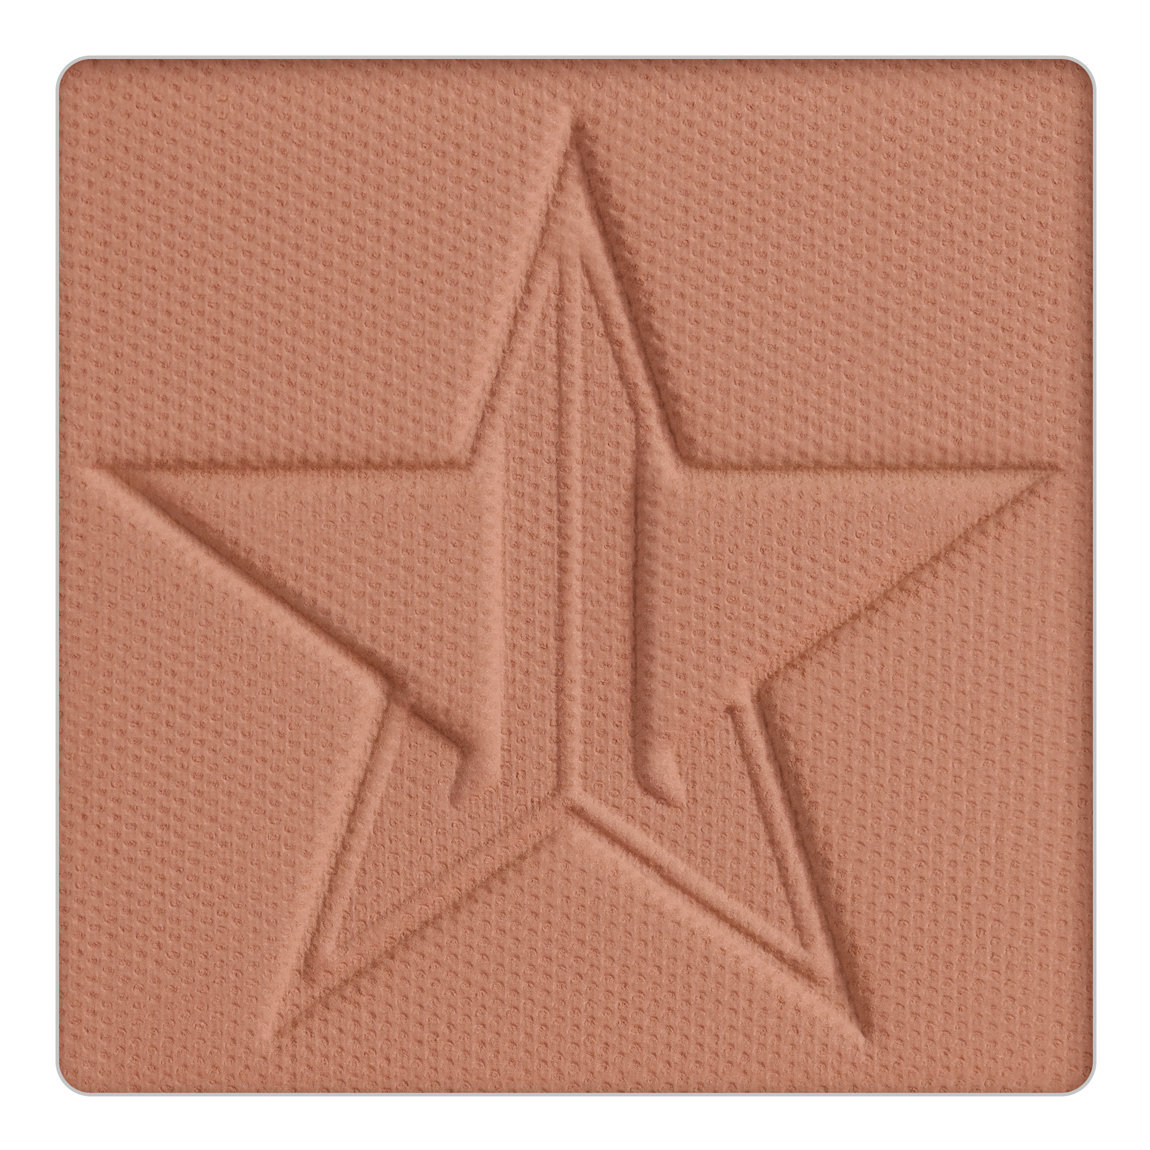 Jeffree Star Cosmetics Artistry Singles Ouch alternative view 1.